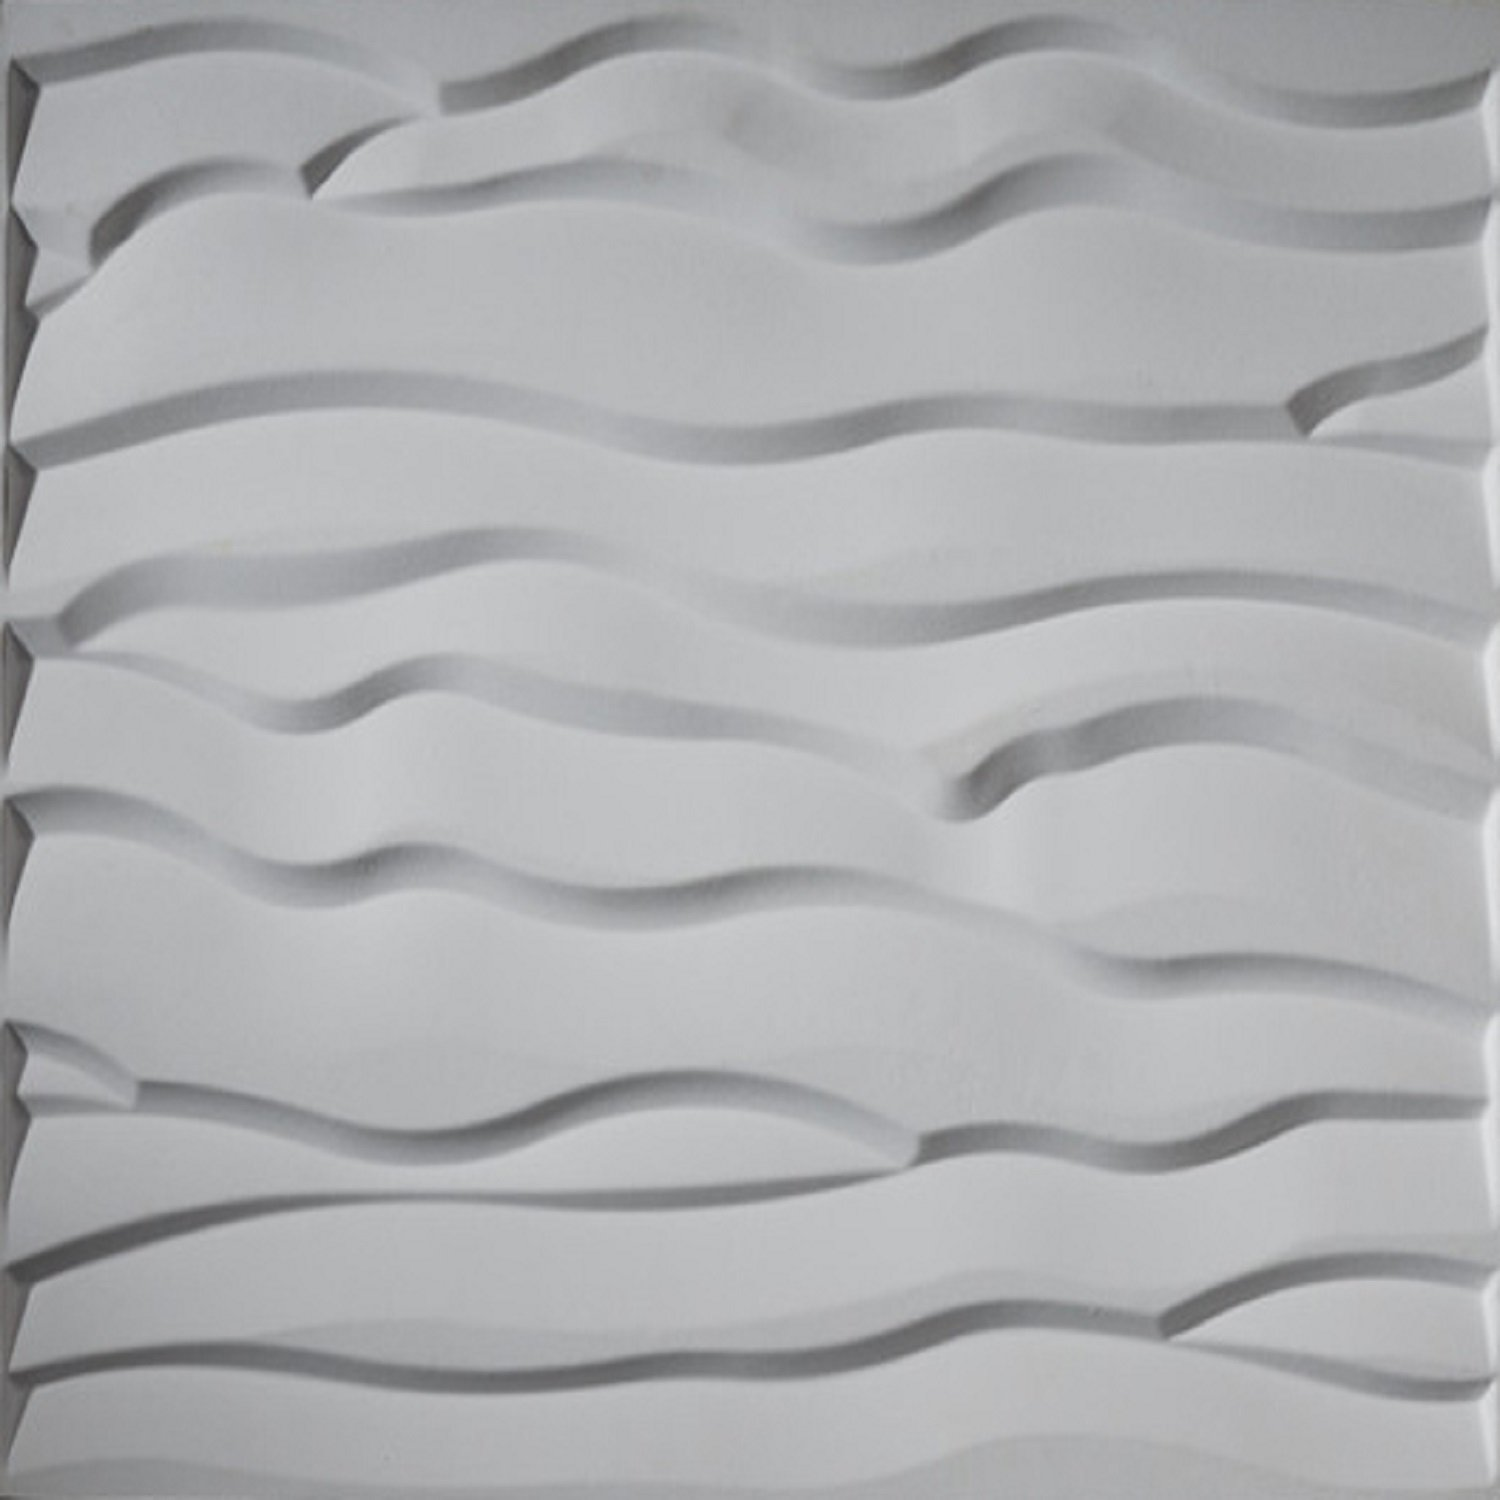 Upscale Designs 02116 32 sq. ft. 3D Glue-On Wall/Ceiling/Wainscoting Panels, Dunes